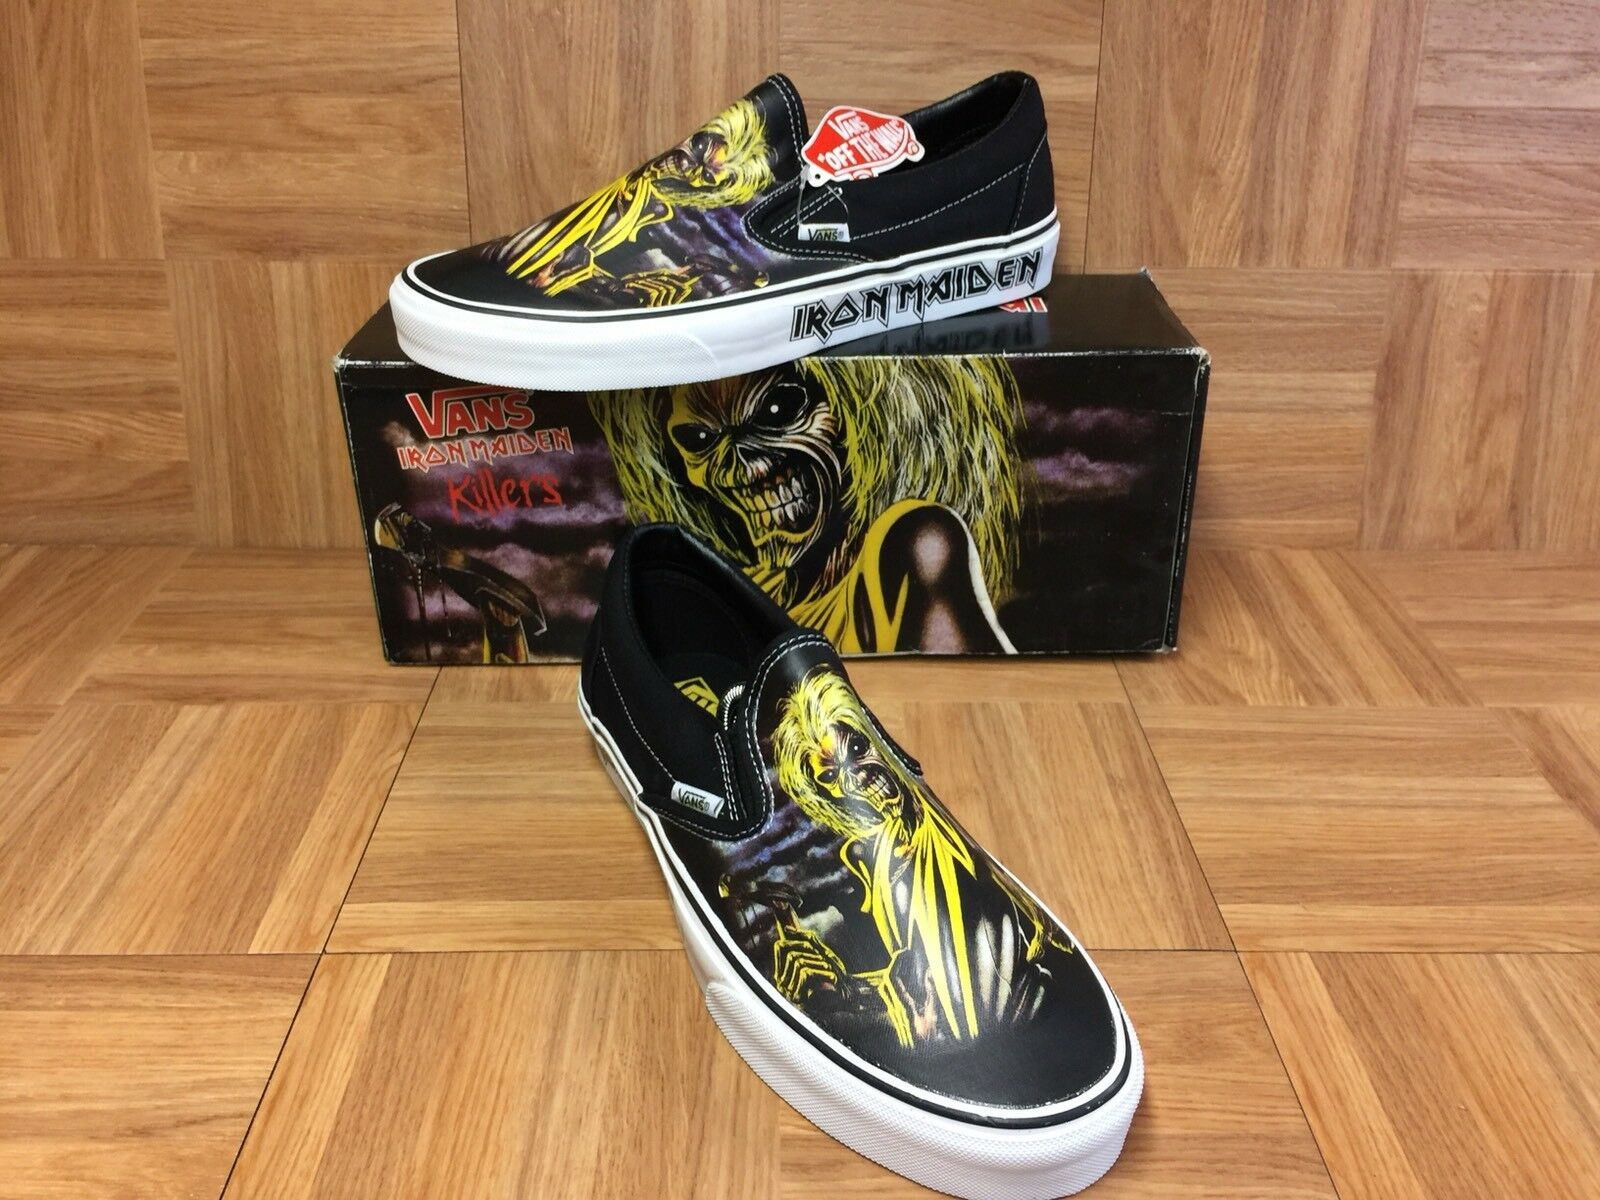 RARE VANS Iron Maiden Killers Slip On Brand New Vintage Sz 10 Men's shoes LE